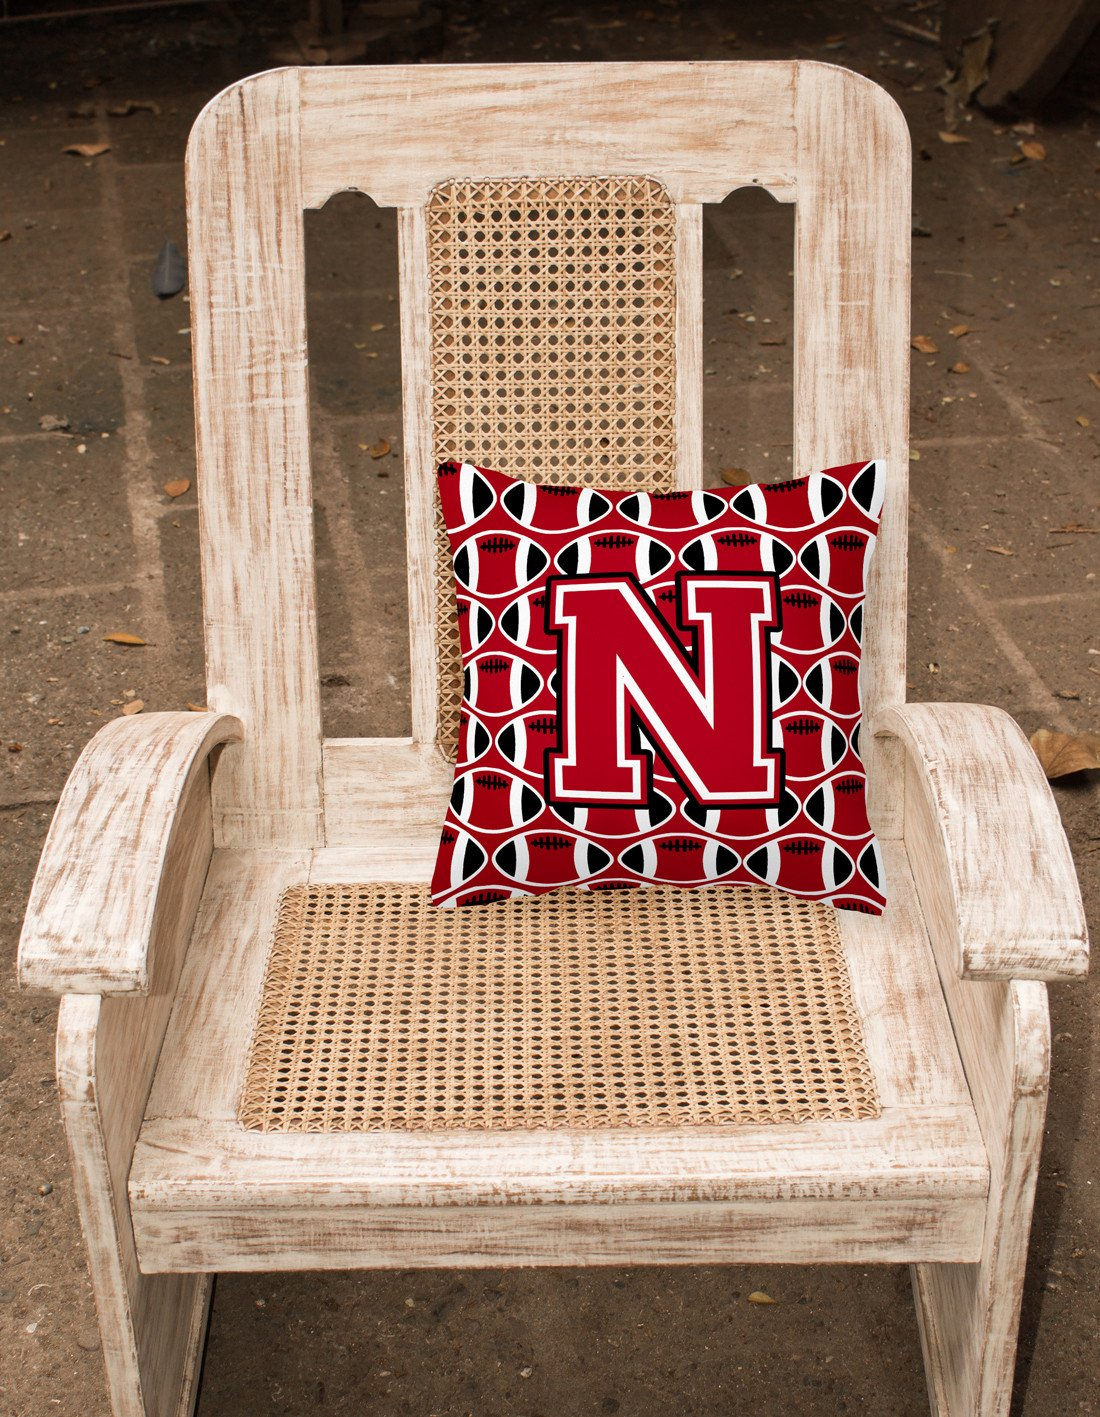 Letter N Football Red, Black and White Fabric Decorative Pillow CJ1073-NPW1414 by Caroline's Treasures